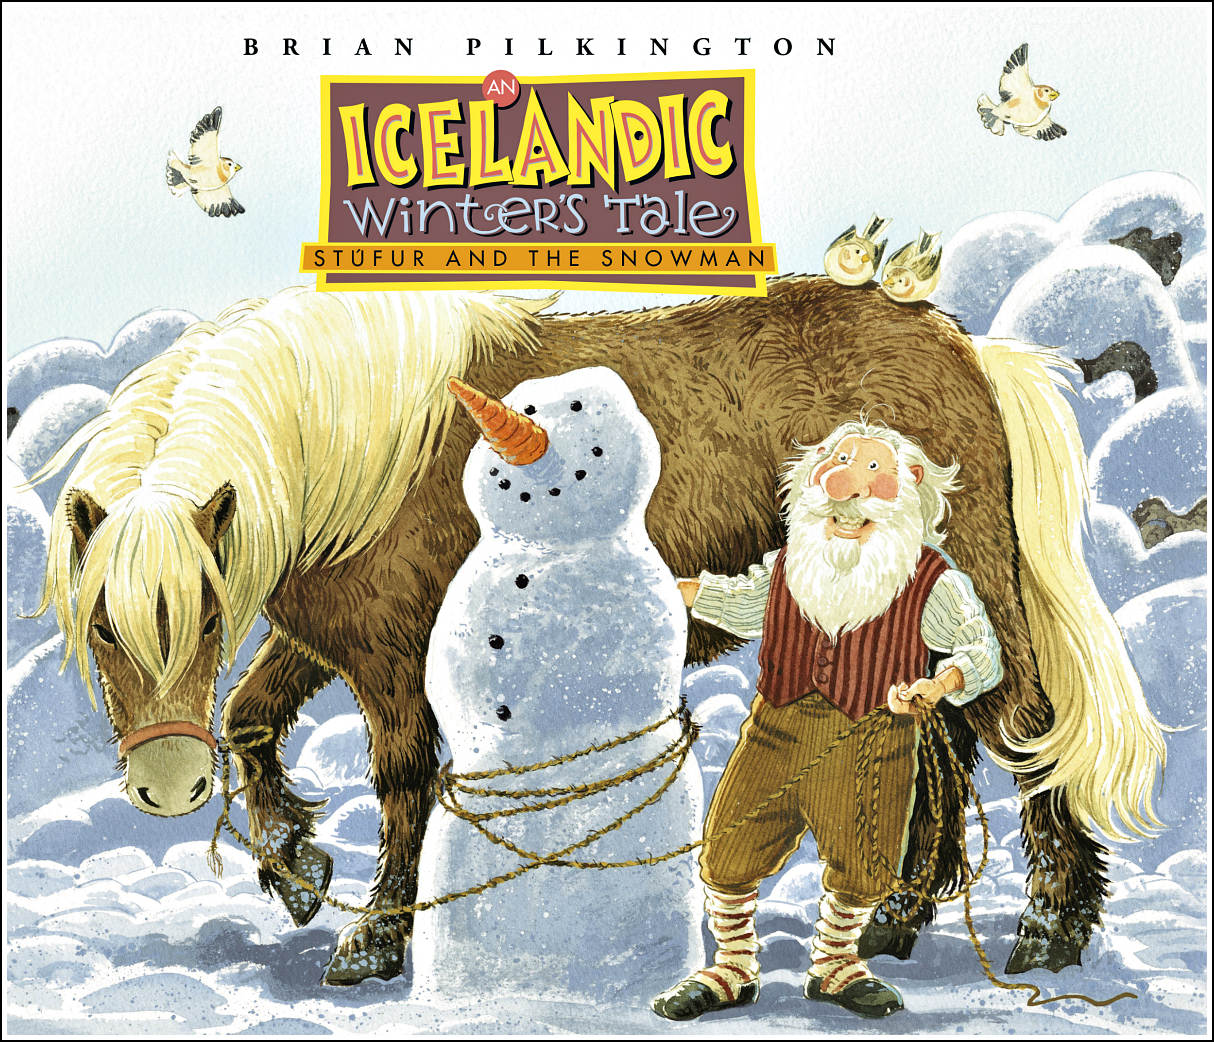 An Icelandic Winter's Tale: Stúfur and the Snowman